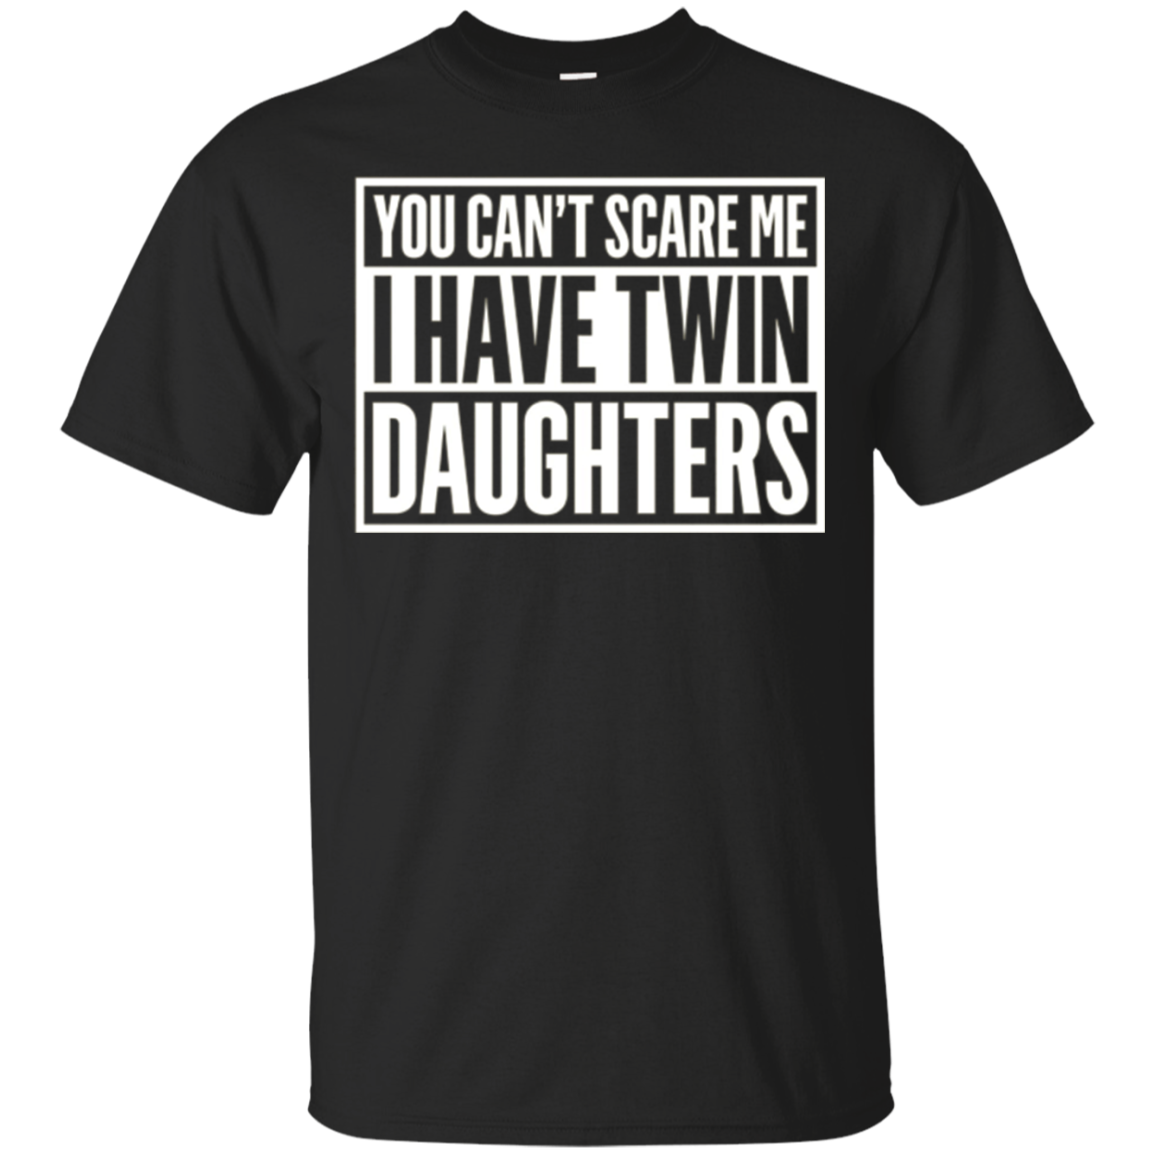 You Can't Scare Me I Have Twin Daughters White C2 T-shirt